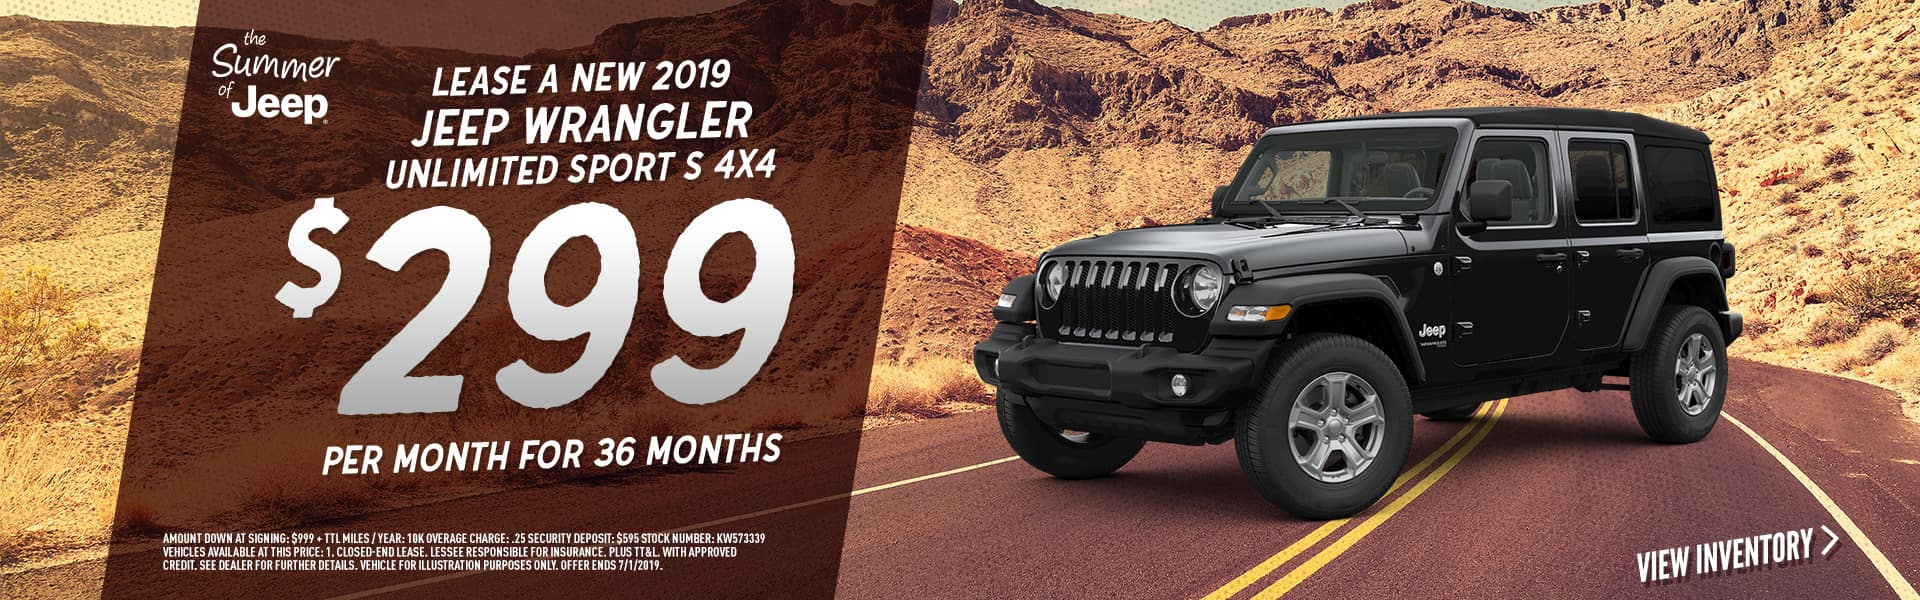 lease-new-2019-jeep-wrangler-unlimited-sport-s-4x4-tulsa